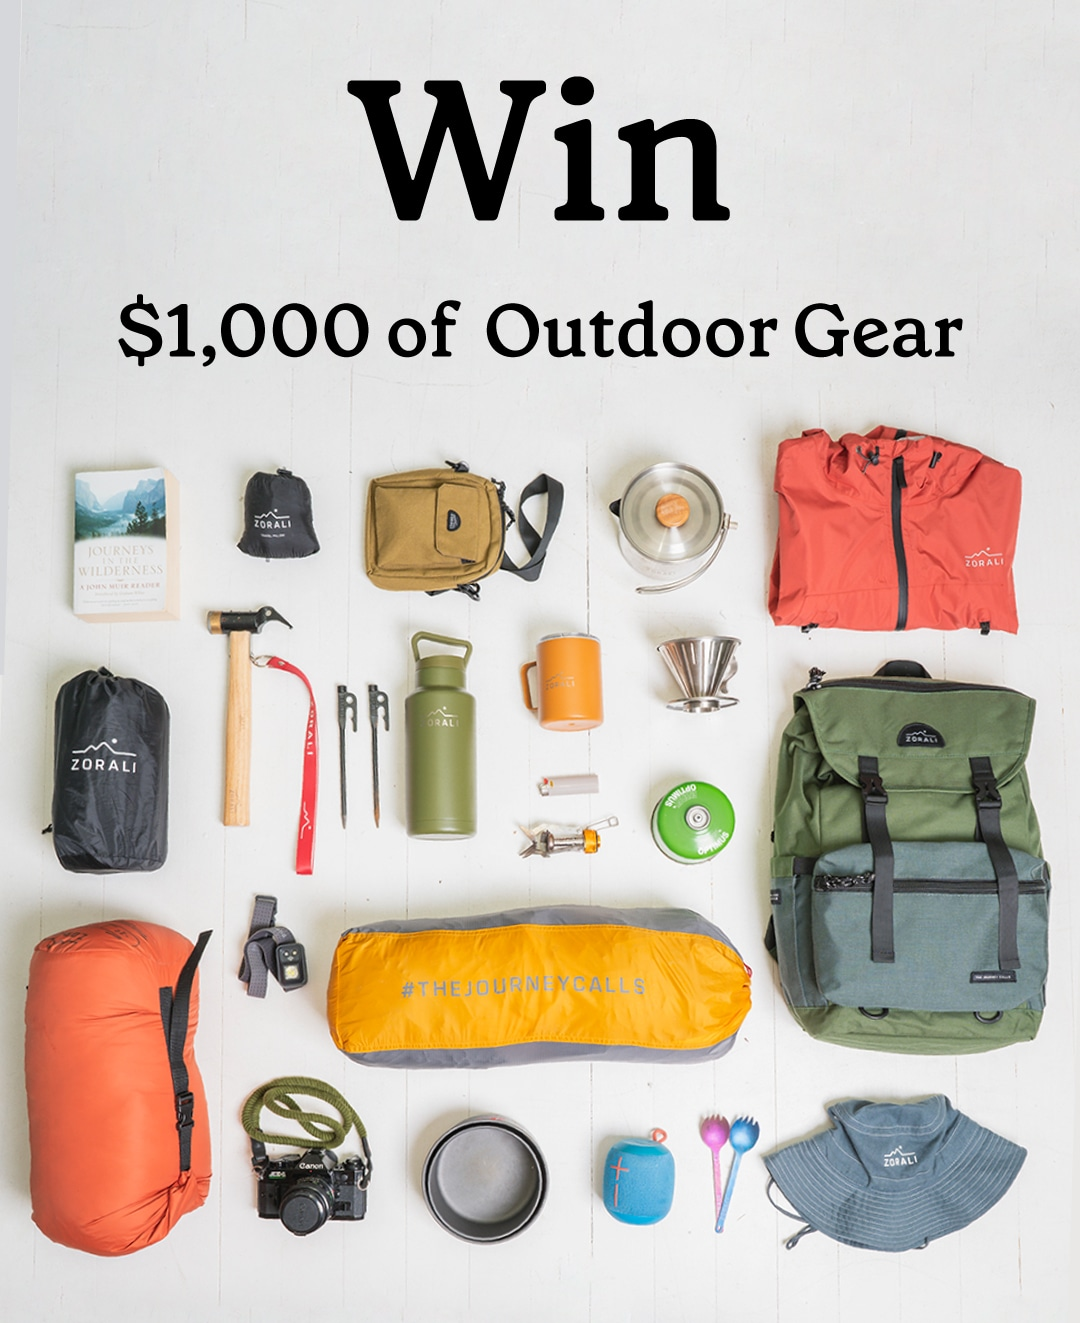 Win a $1,000 Zorali's Ultimate Outdoor Gear Giveaway Giveaway Image